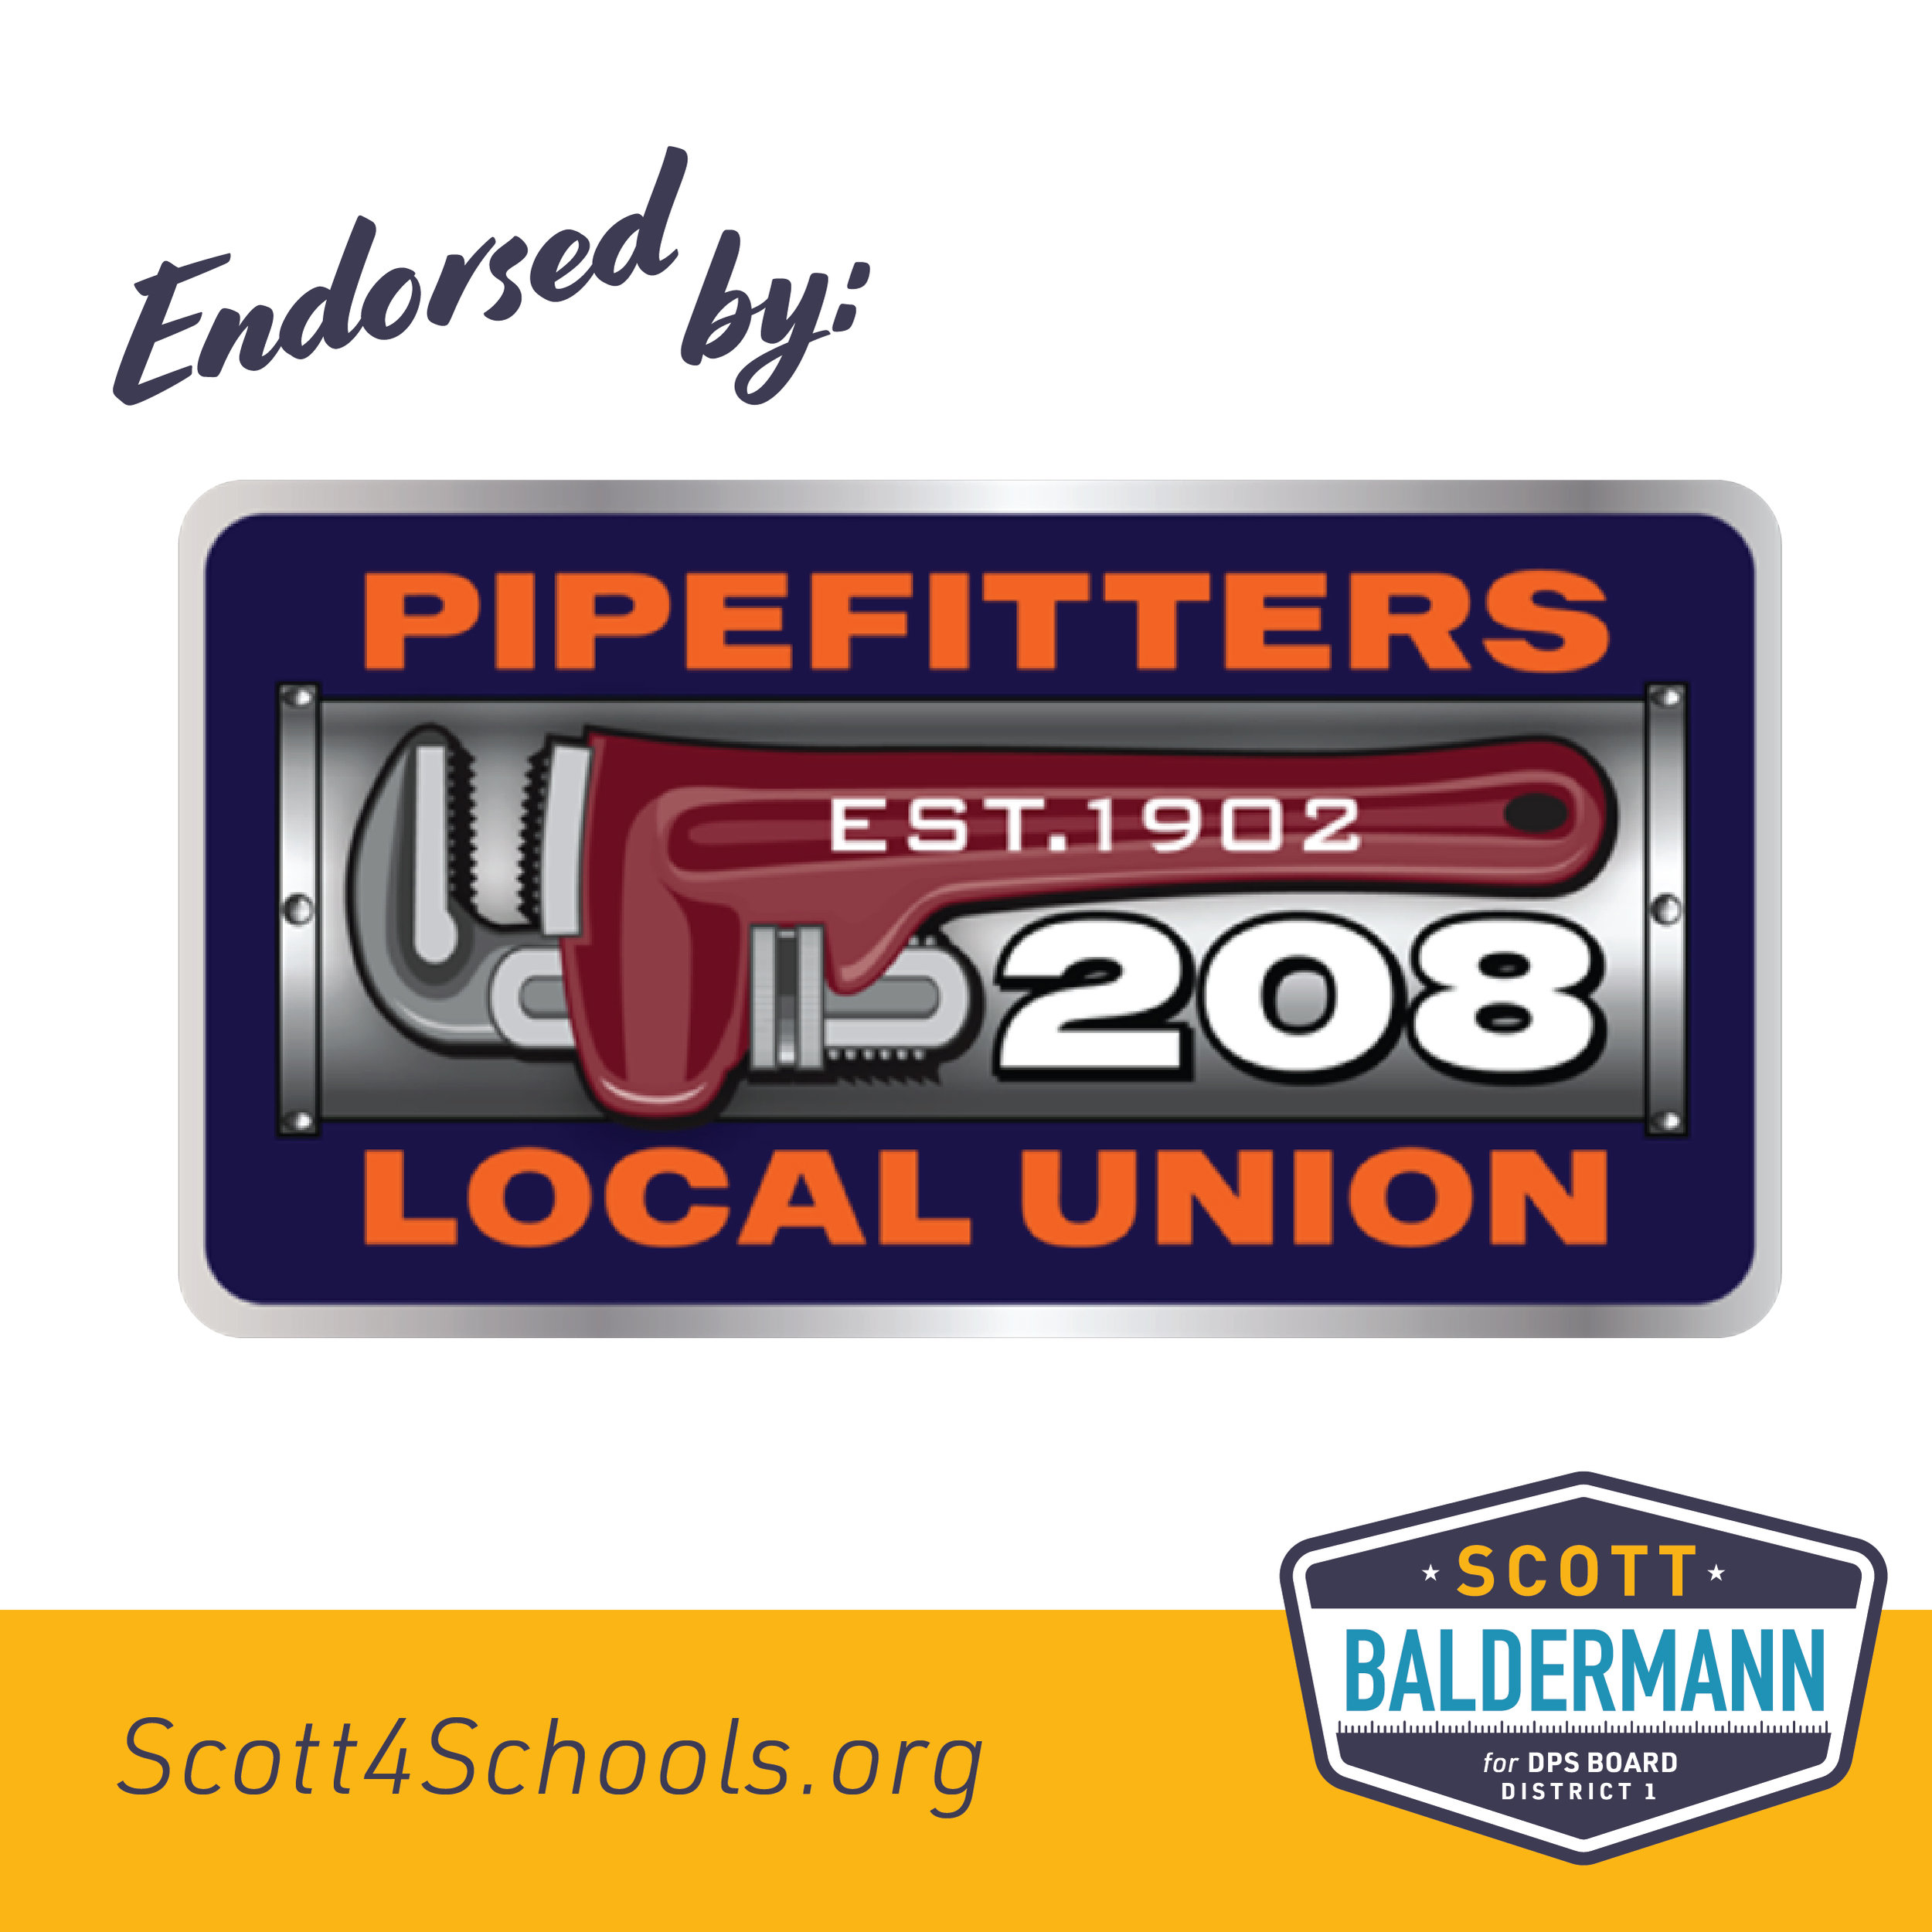 Pipefitters 208 Local Union - Denver Pipefitters Local 208 is proud to endorse Scott Baldermann for Denver Public School Board. Scott's experience in construction and contract language/finances will bring increased efficiencies and transparency to the DPS budget. Scott's commitment to ensuring licensed professional contractors perform capital construction and repairs in our schools will not only funnel additional monies into the classroom but provide added work opportunities to local residents as well. Scott is the right choice for our schools, our teachers, and our students.- Gary Arnold, Business Manager, Denver Pipefitters Local 208I am proud to have the support and endorsement of the dedicated and hardworking members of Pipefitters Local 208!